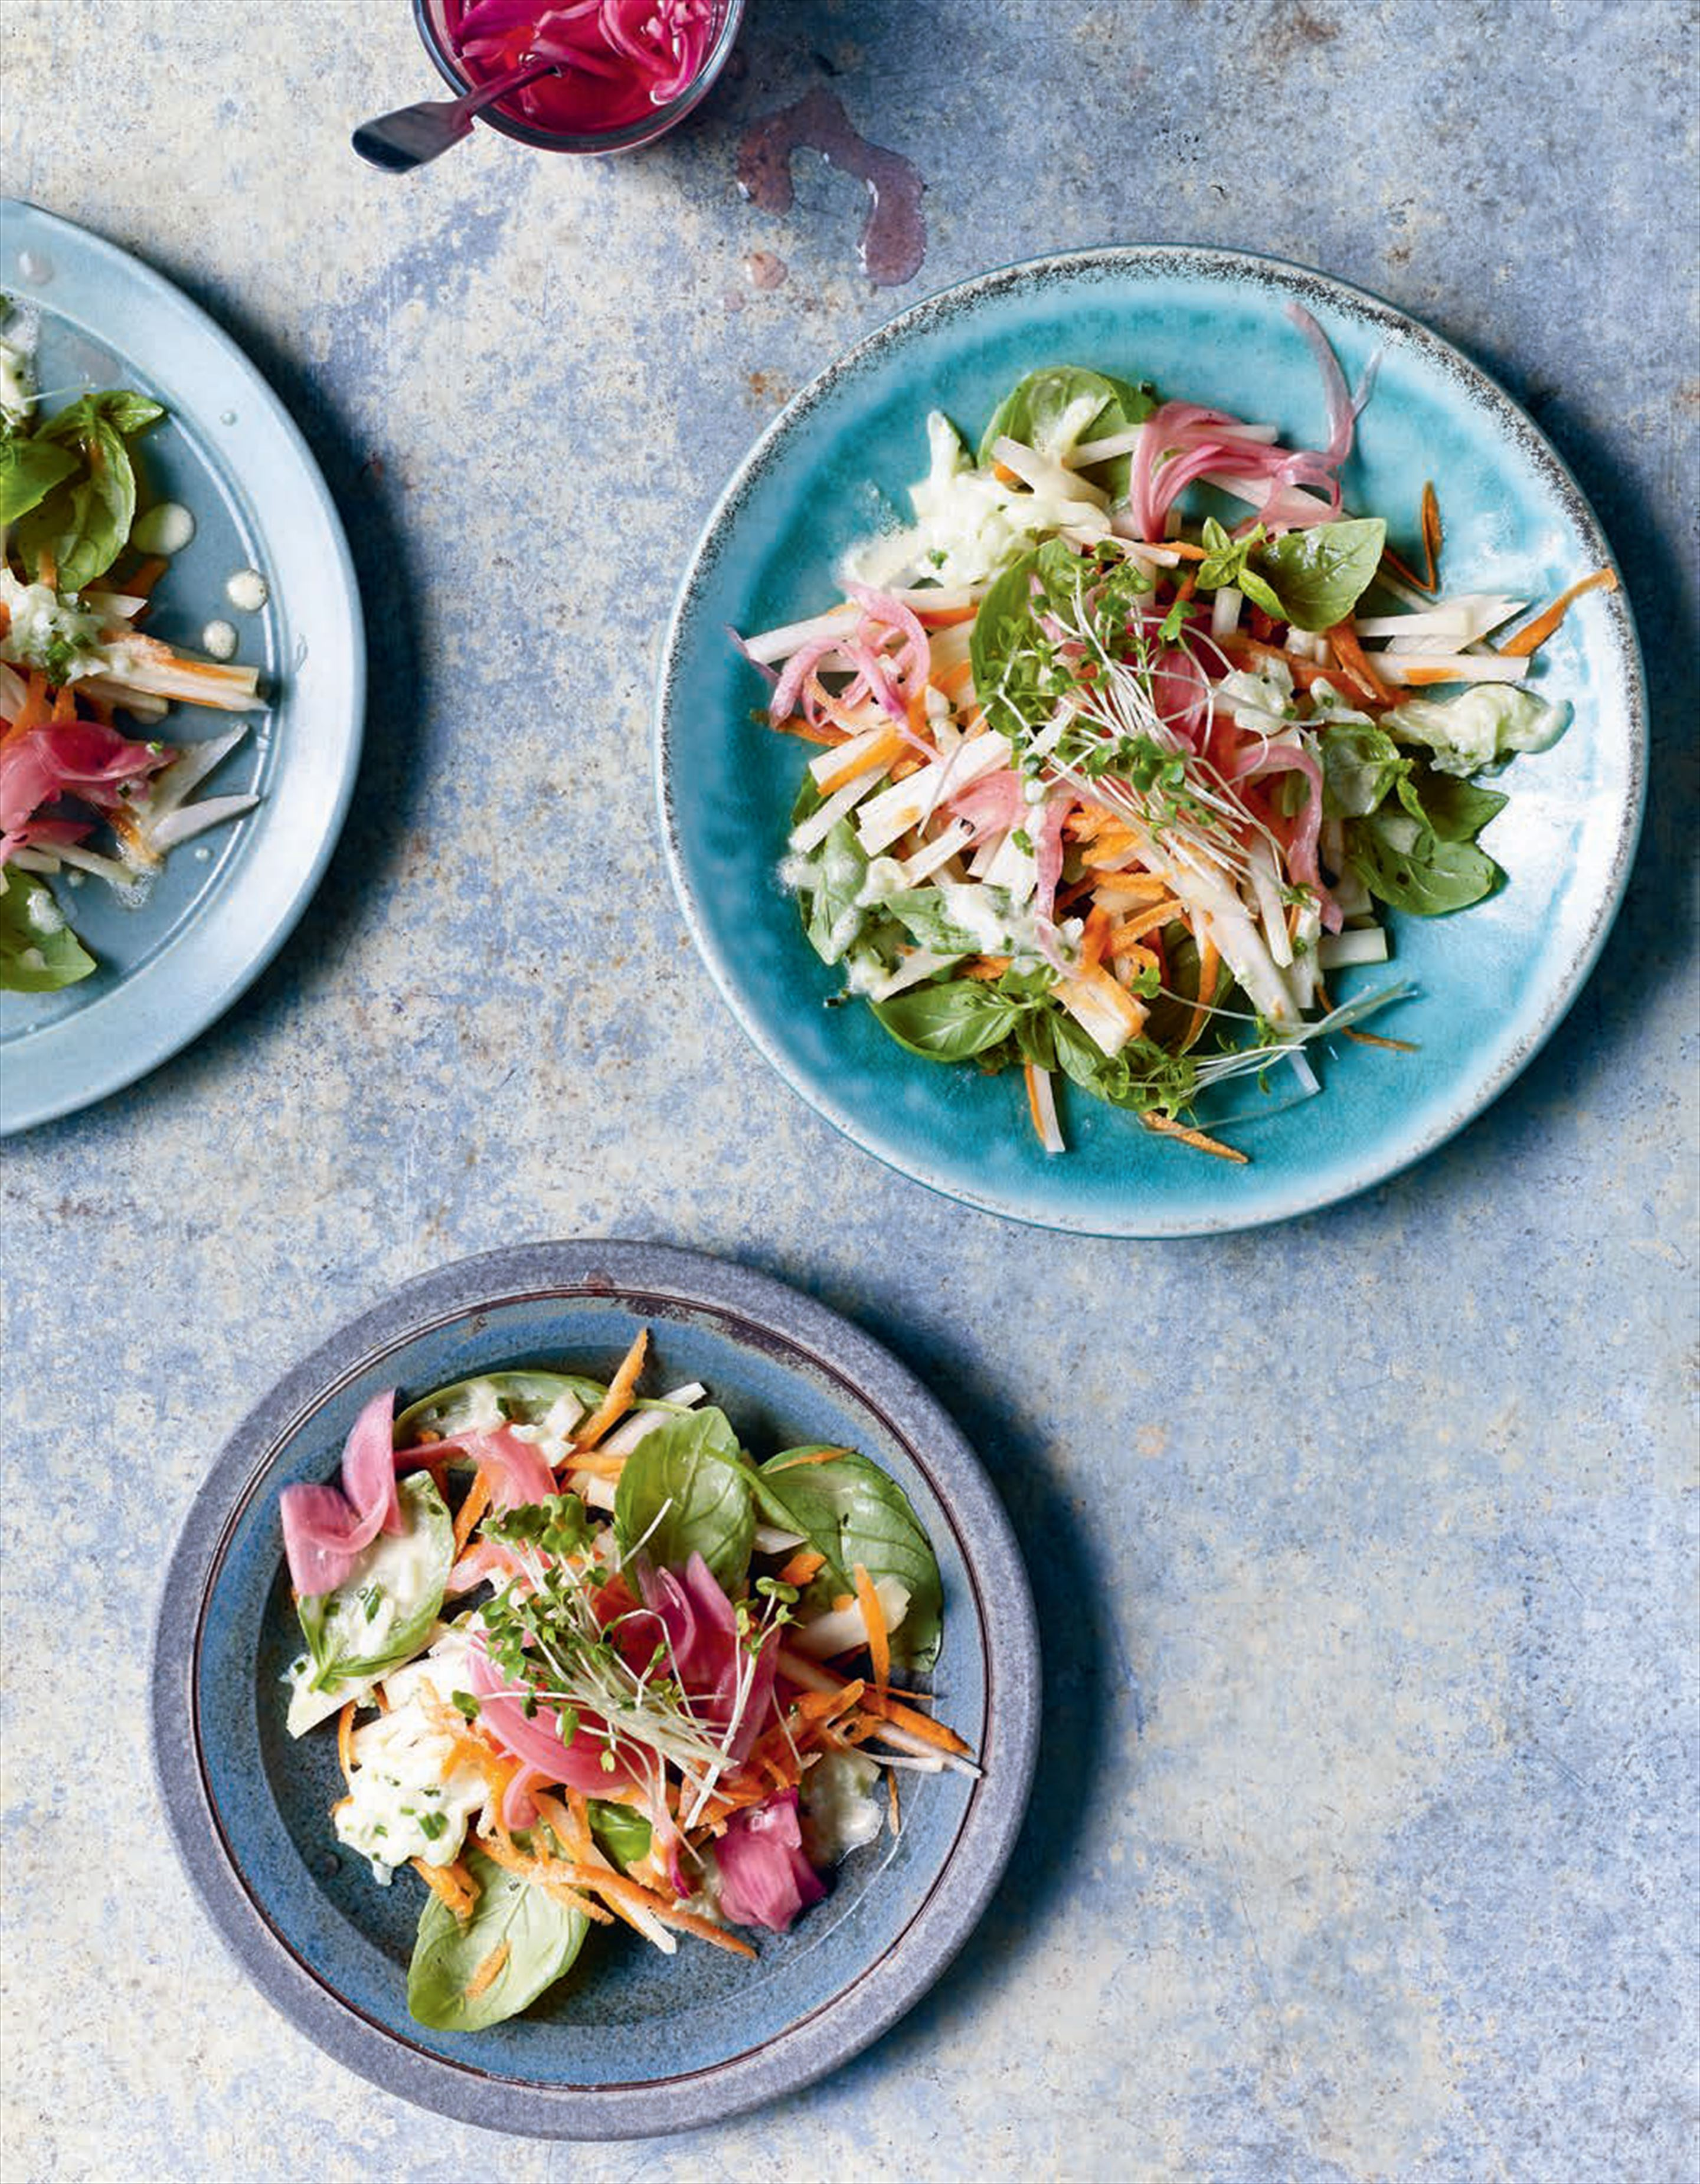 Kohlrabi and pickled onion salad